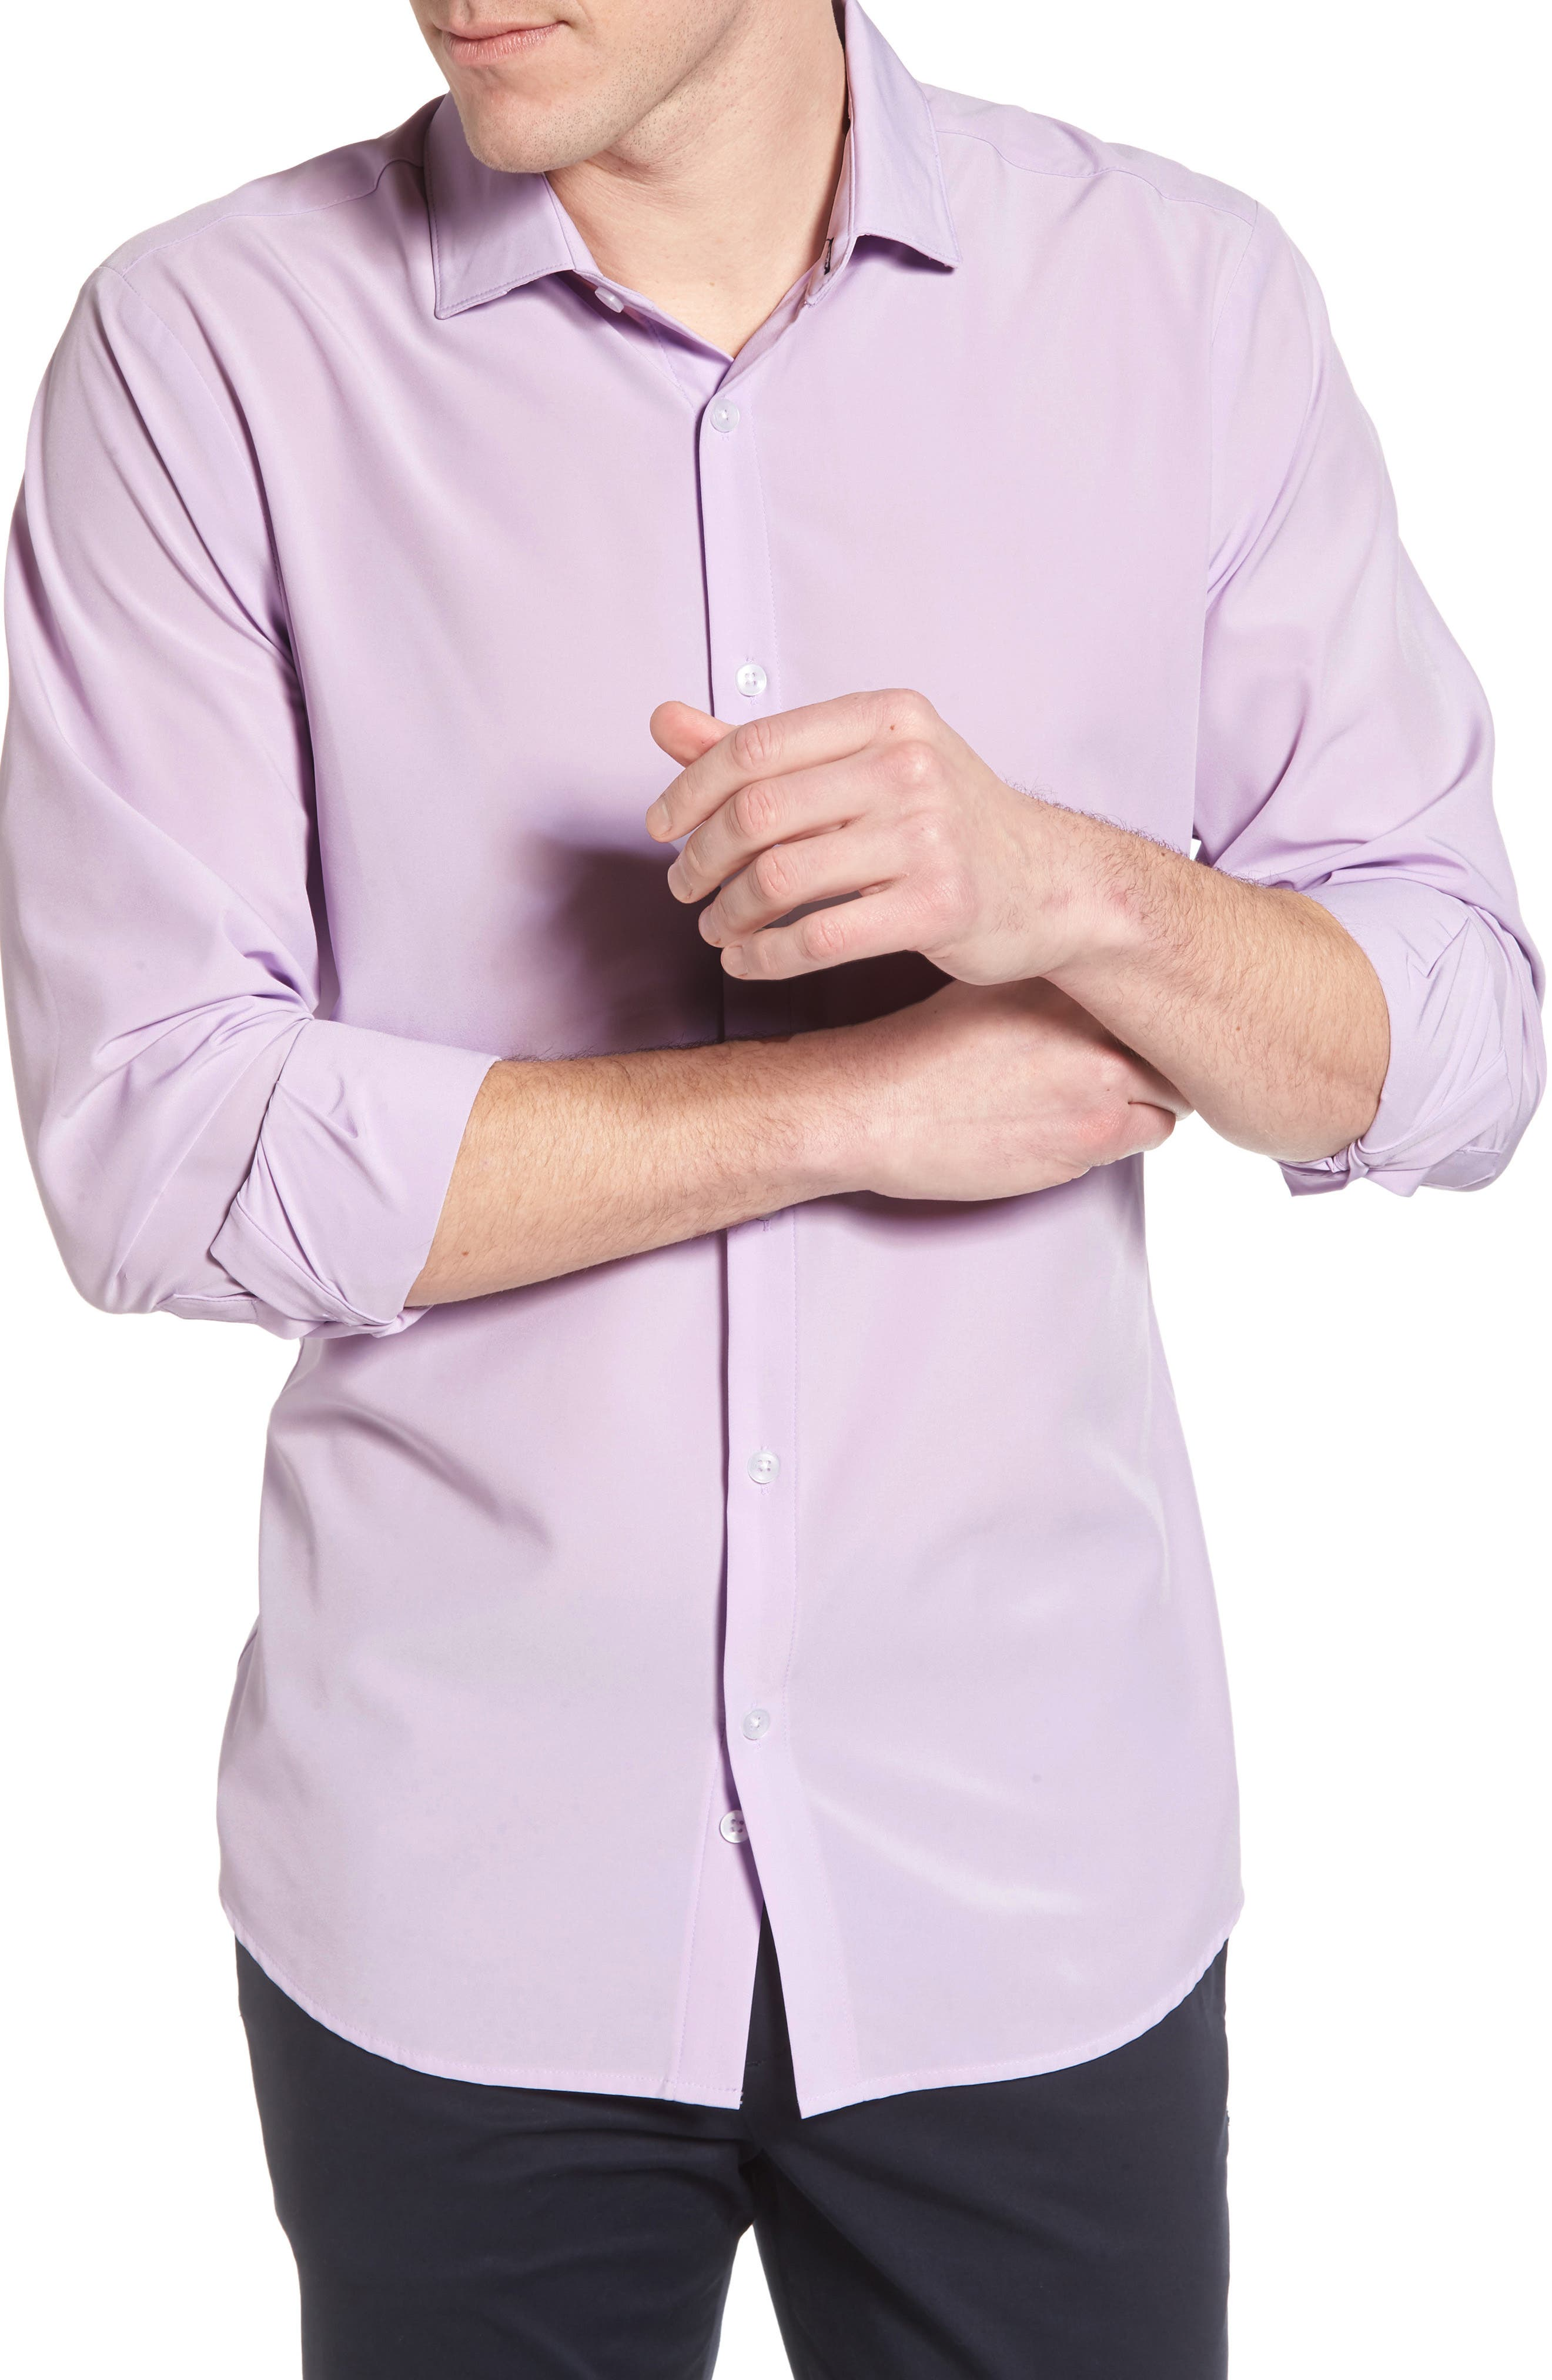 Henderson Performance Sport Shirt,                             Alternate thumbnail 4, color,                             Purple